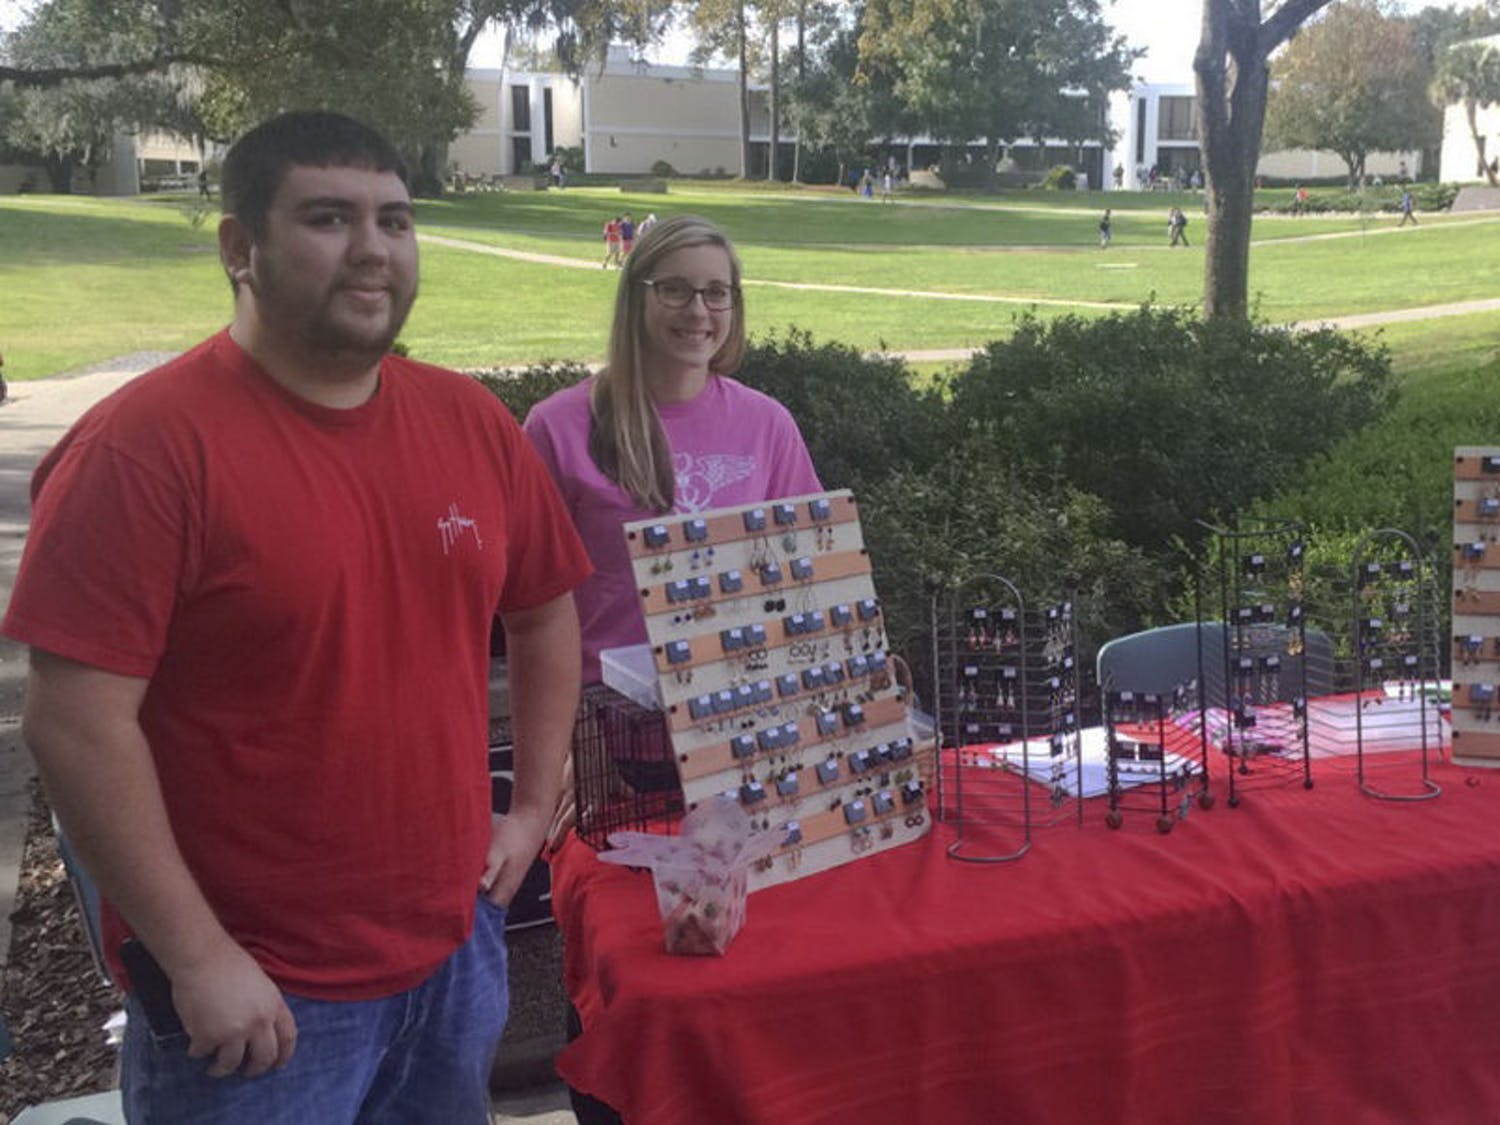 Tyler Welz (left), a 22-year-old Santa Fe nursing senior, and Caroline Lewis, a 21-year-old Santa Fe nursing senior, sell earrings on Nov. 30, 2015, outside Santa Fe's food court to fund a trip to the Nursing Student Association's annual convention in Orlando. The earring sale ends today at 2 p.m.